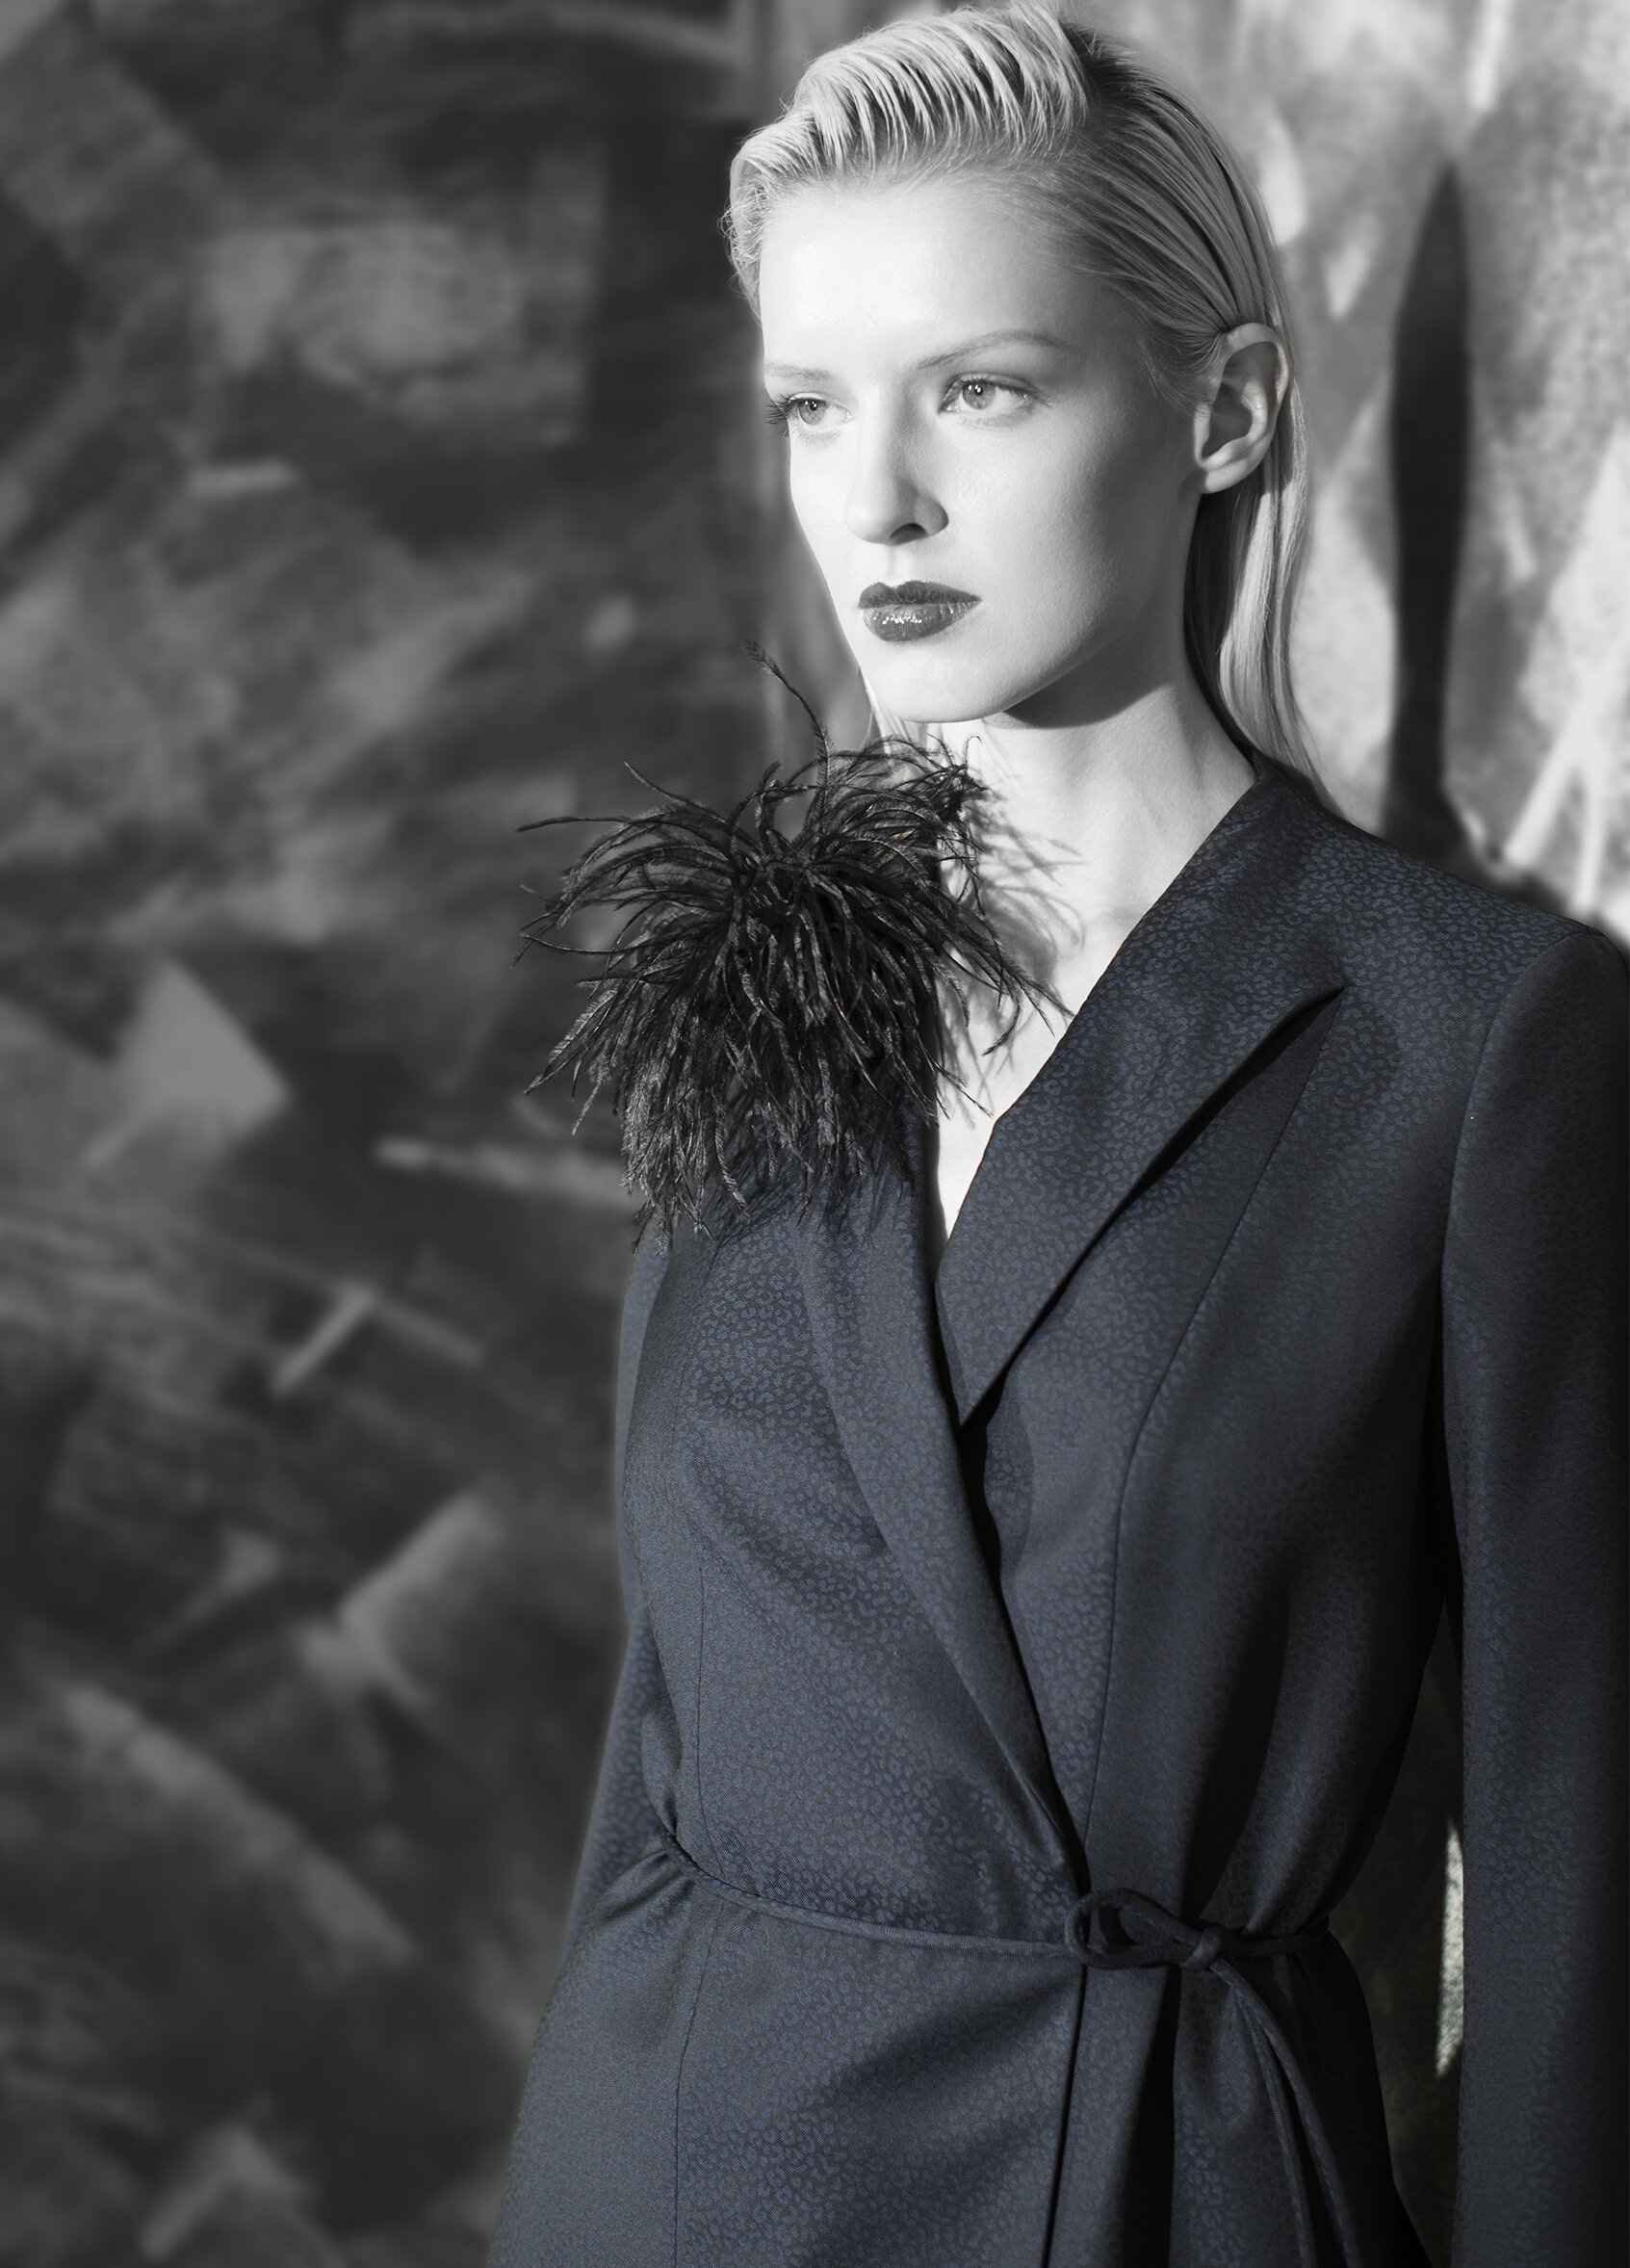 Abstract jacquard superfine wool back fluid skirt and belt tie jacket with feather pin  onyx midnight opal   Patent with nappa long glove  Patent with crocodile calf-skin bag